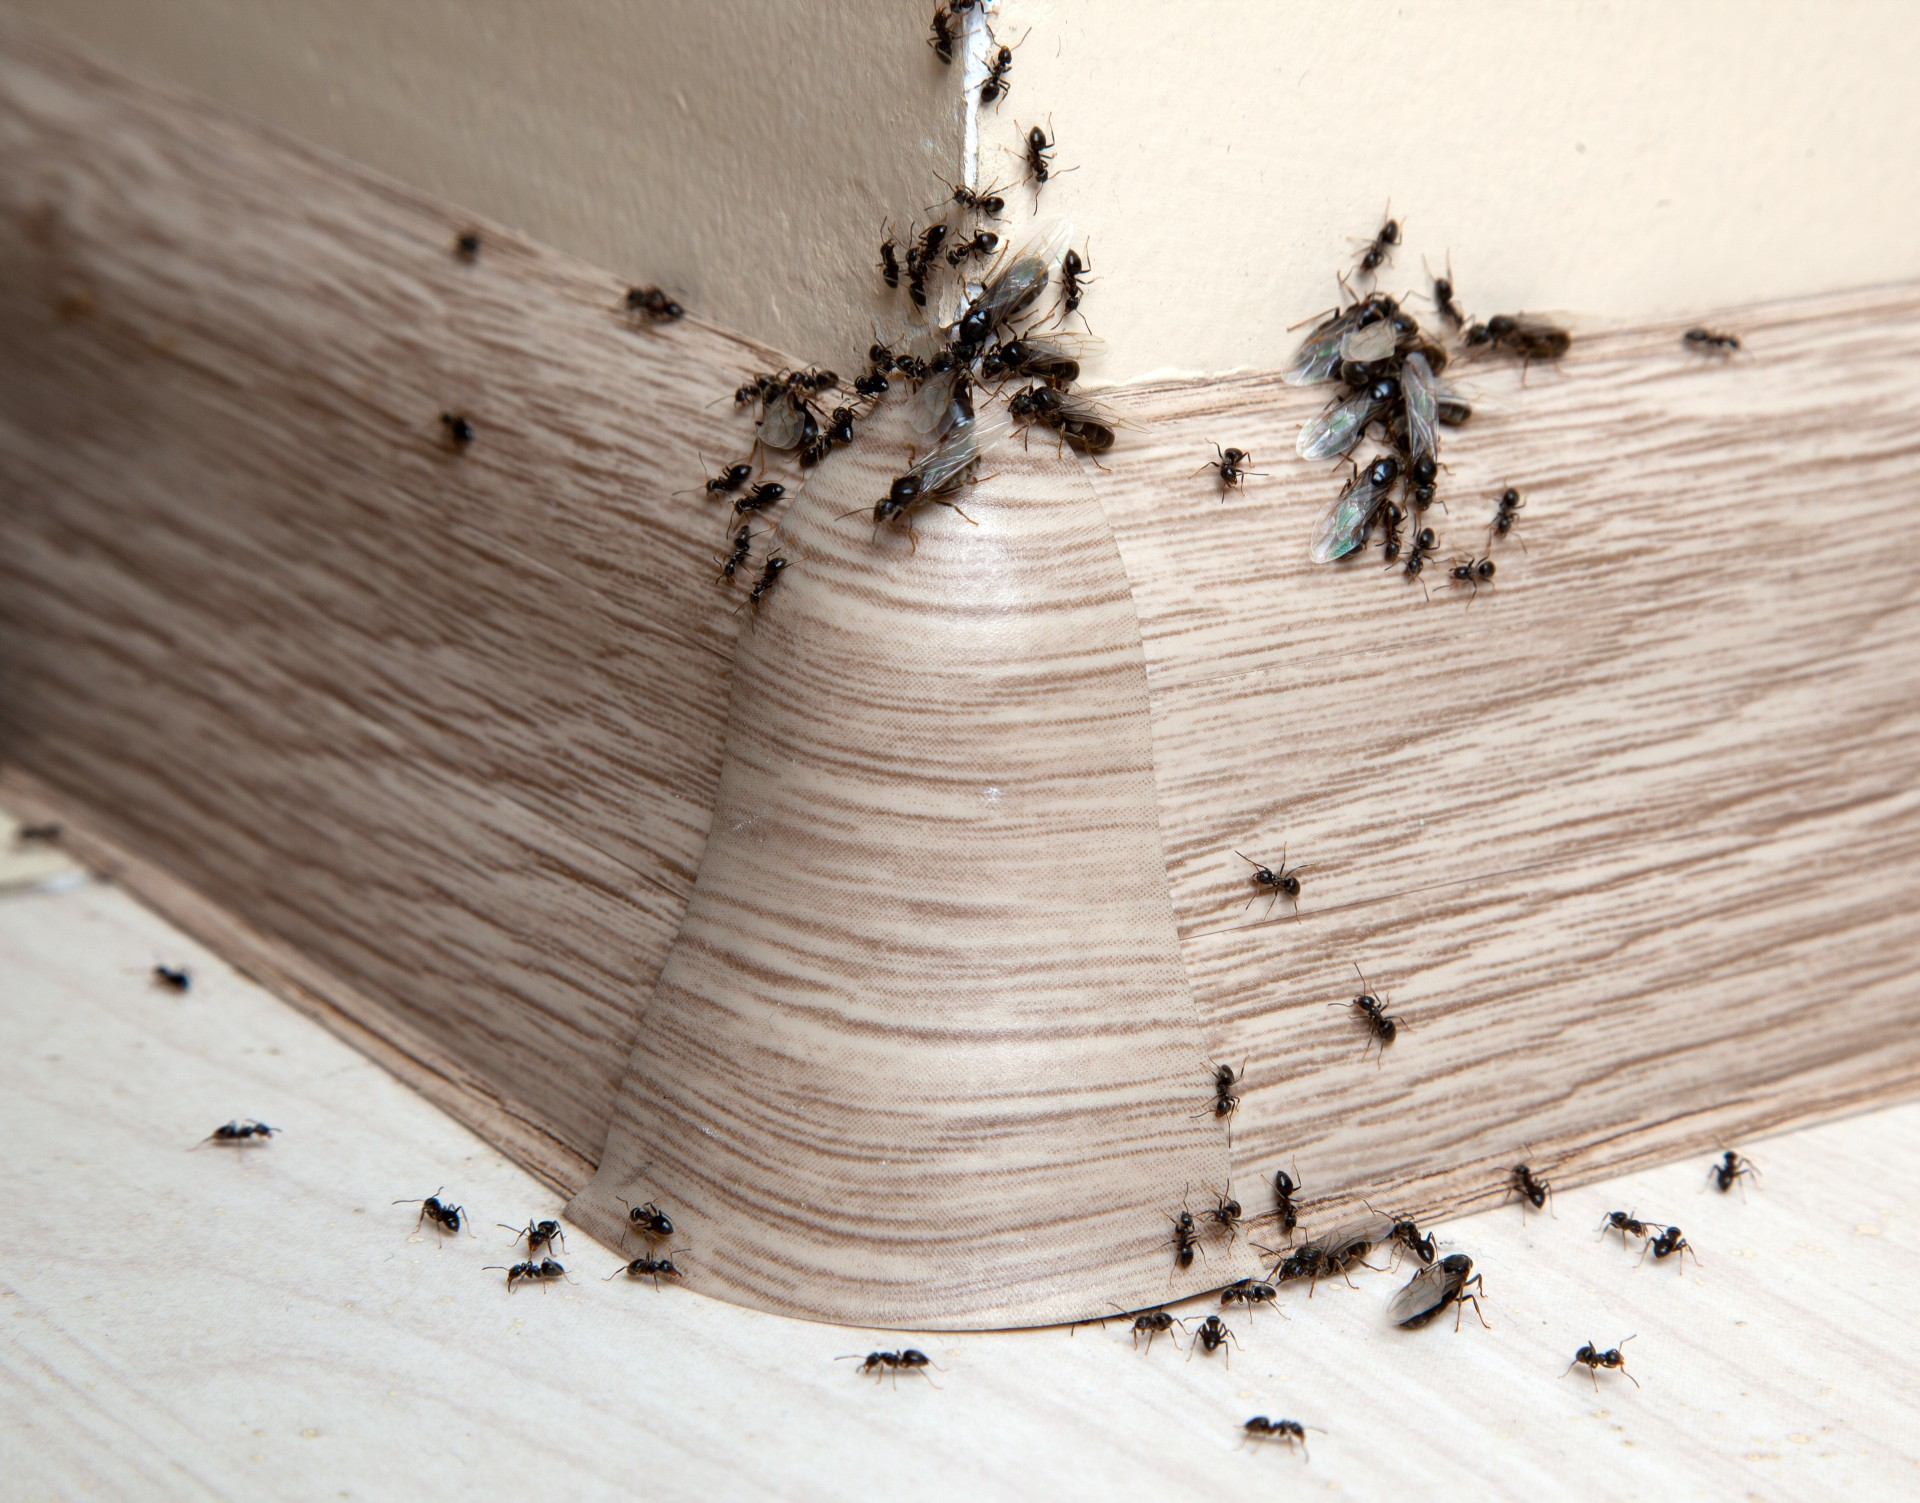 Ant Infestation, Pest Control in North Feltham, East Bedfont, TW14. Call Now 020 8166 9746